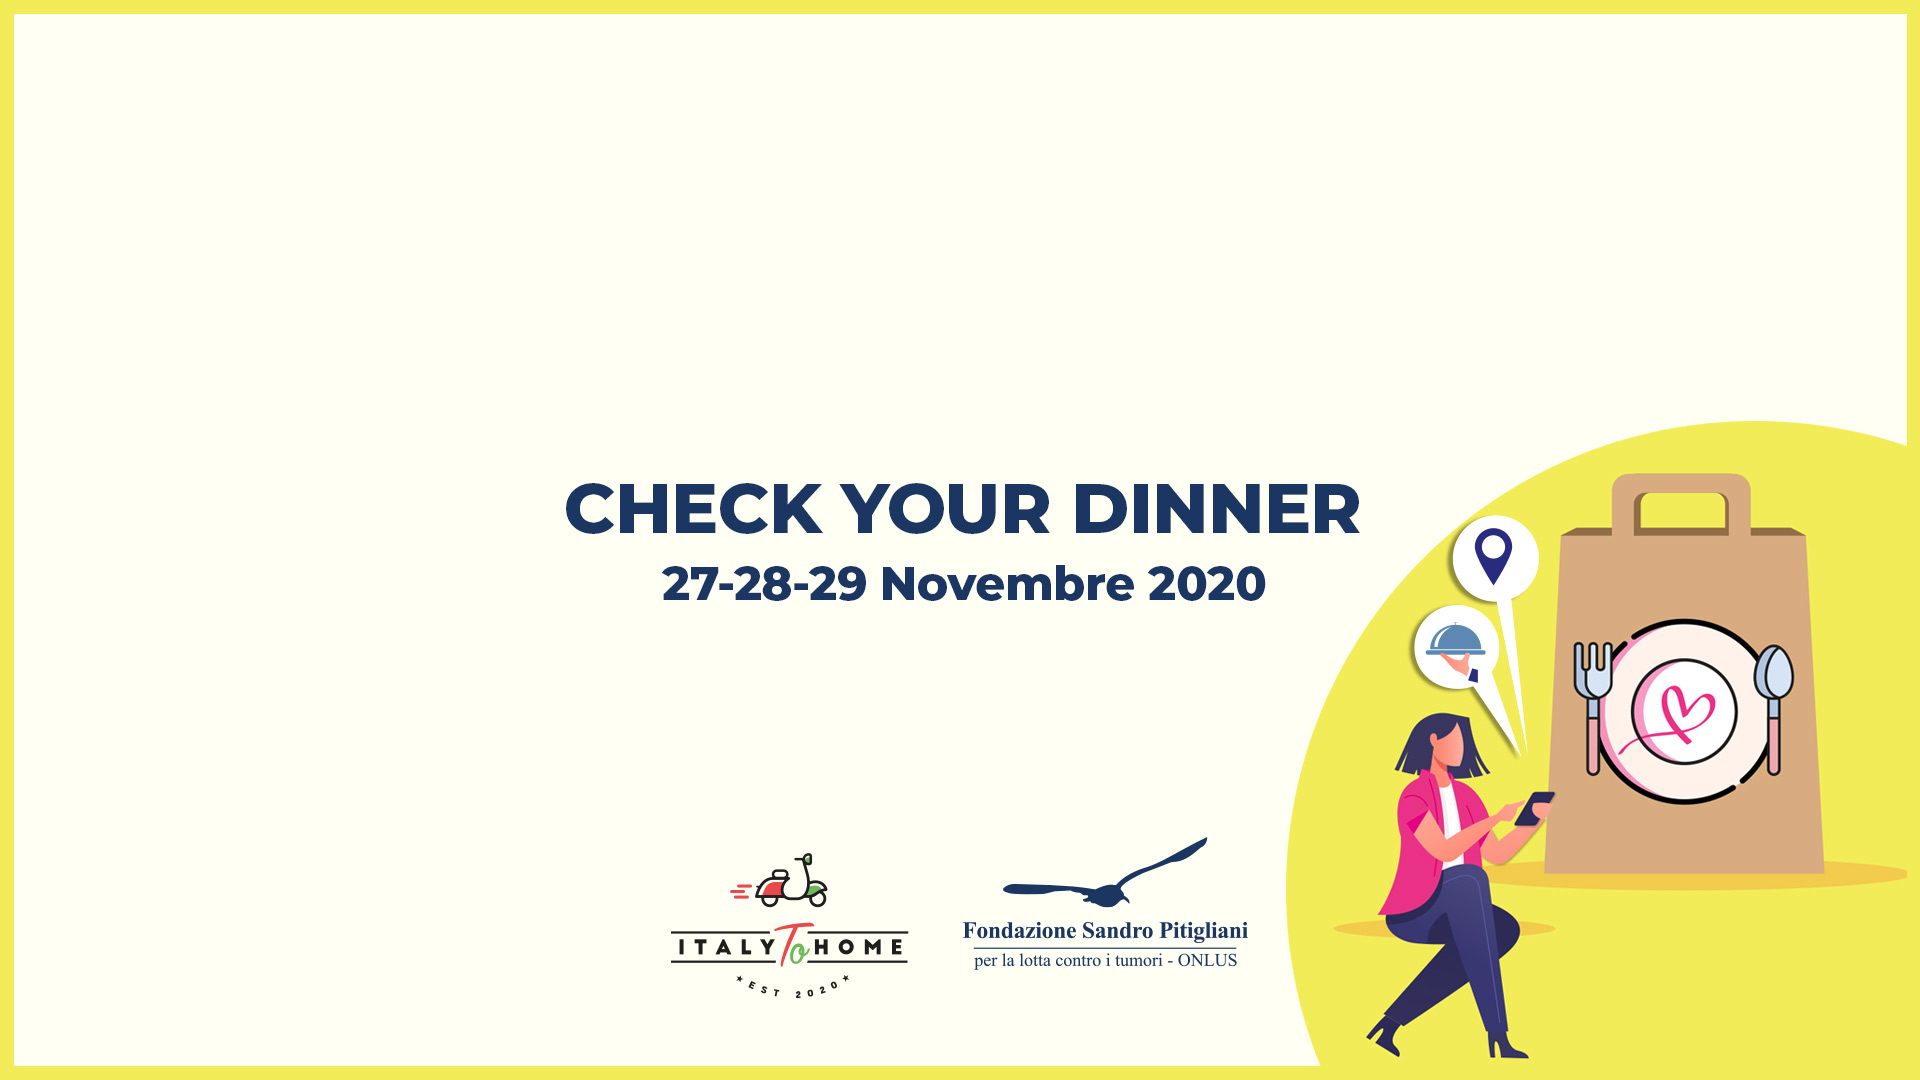 Check your dinner, evento benefico